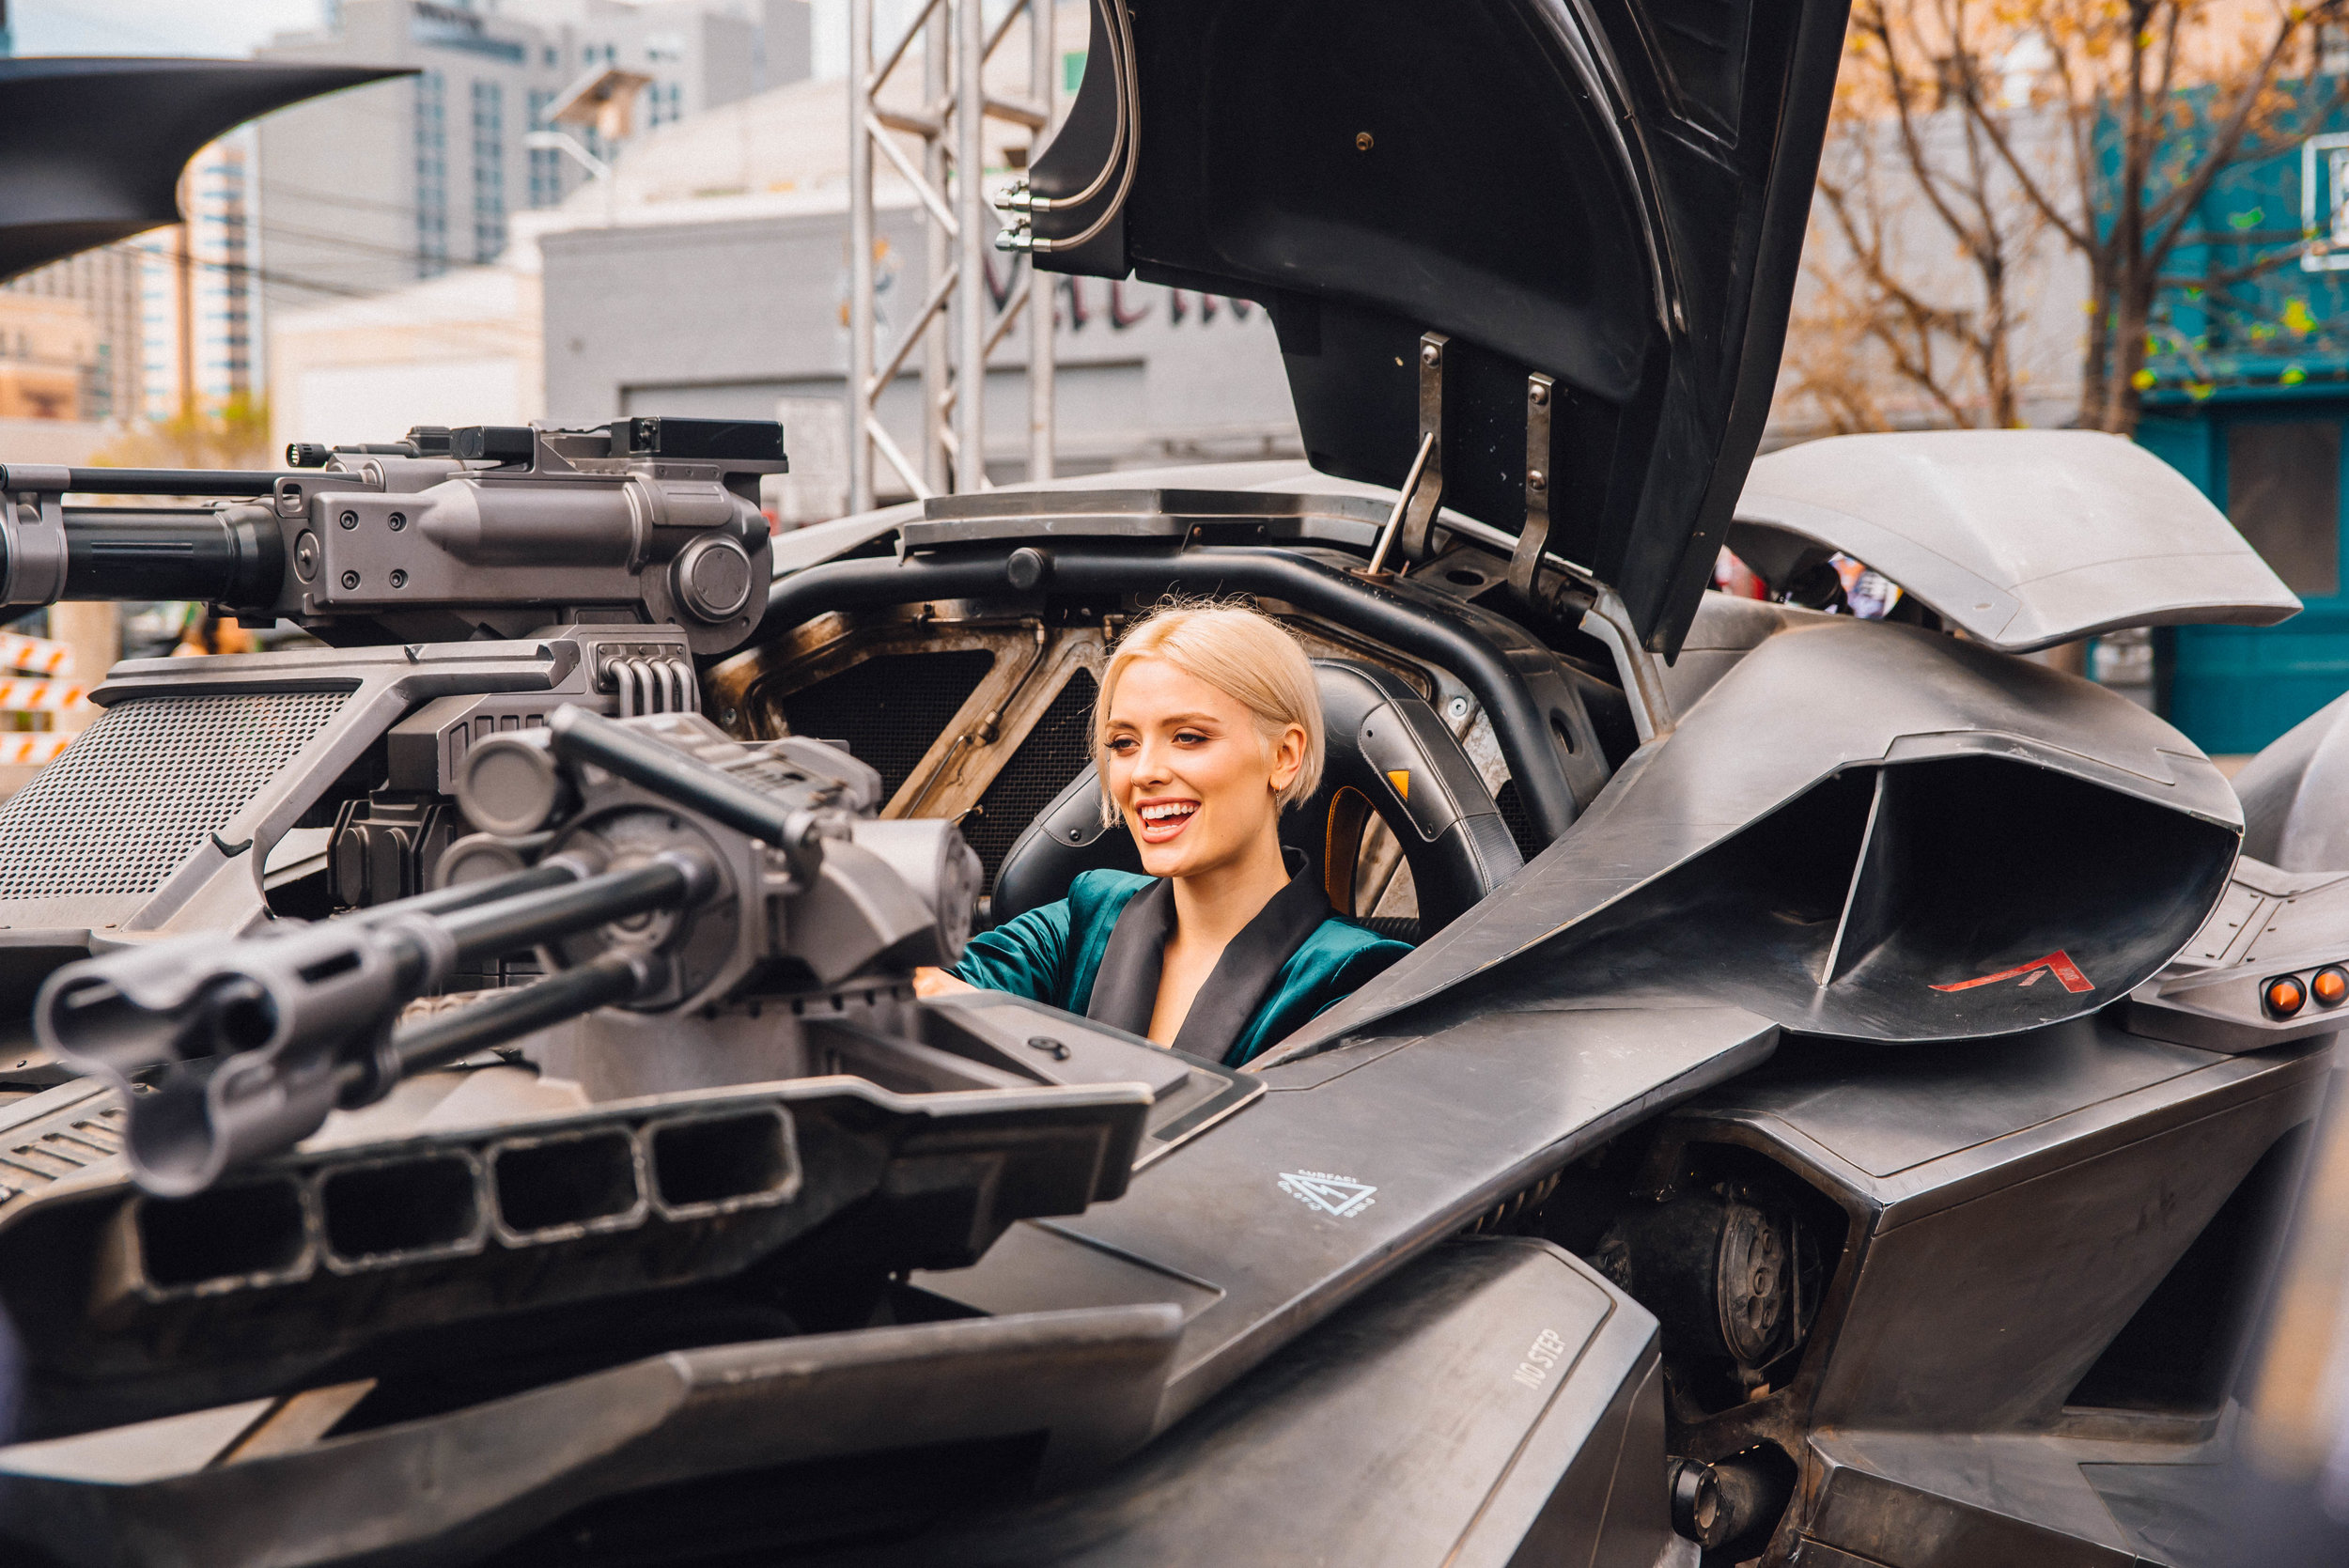 Wallis Day at DC Comics event at SXSW 2018 | Jordan Hefler